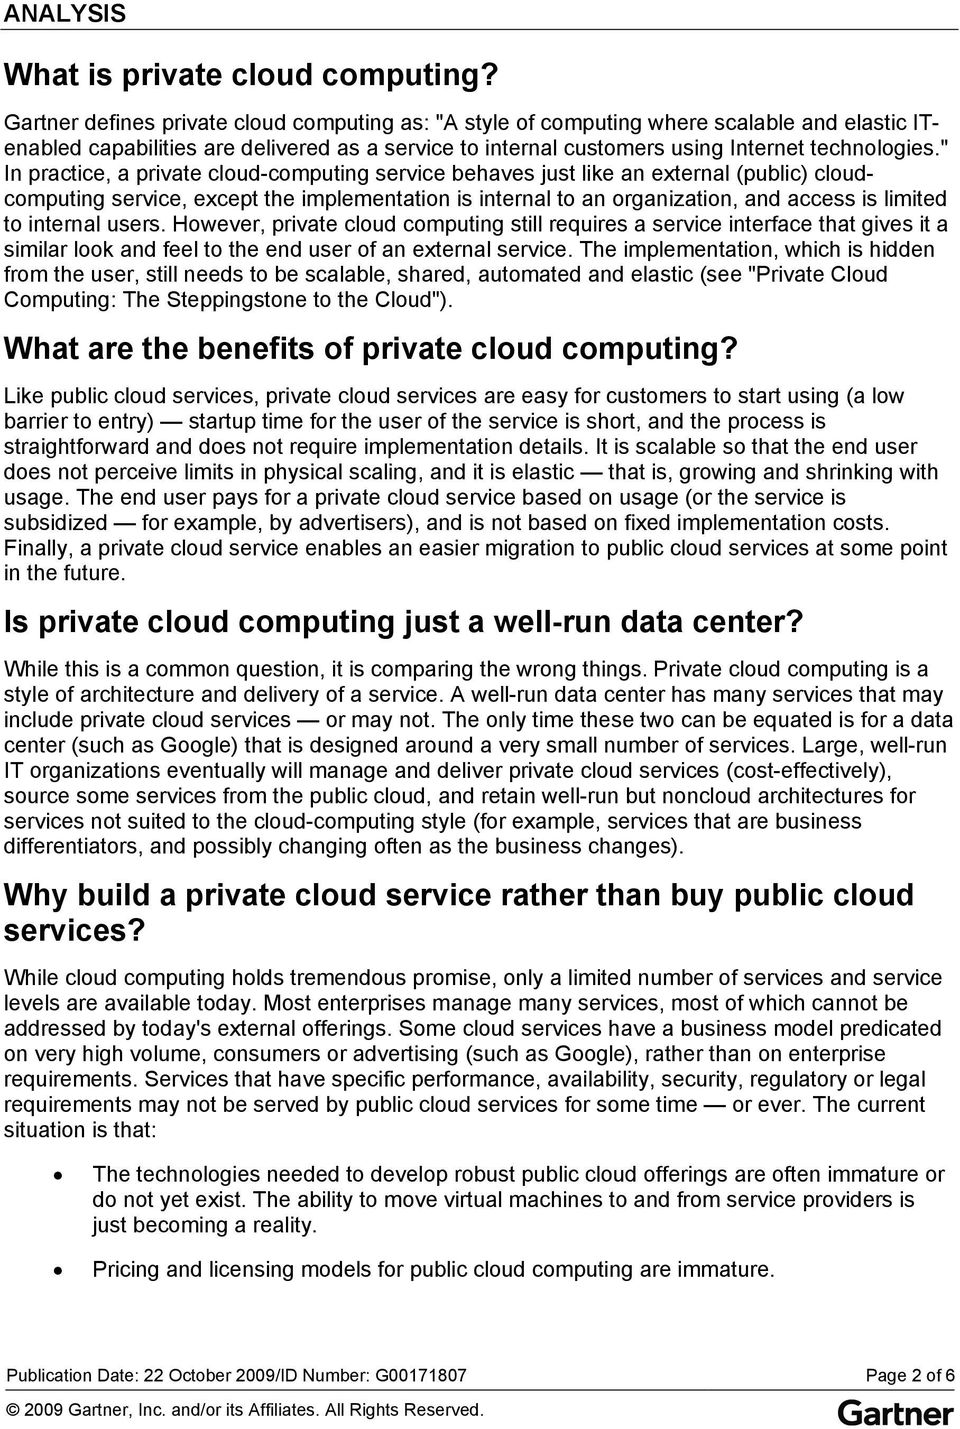 """ In practice, a private cloud-computing service behaves just like an external (public) cloudcomputing service, except the implementation is internal to an organization, and access is limited to"